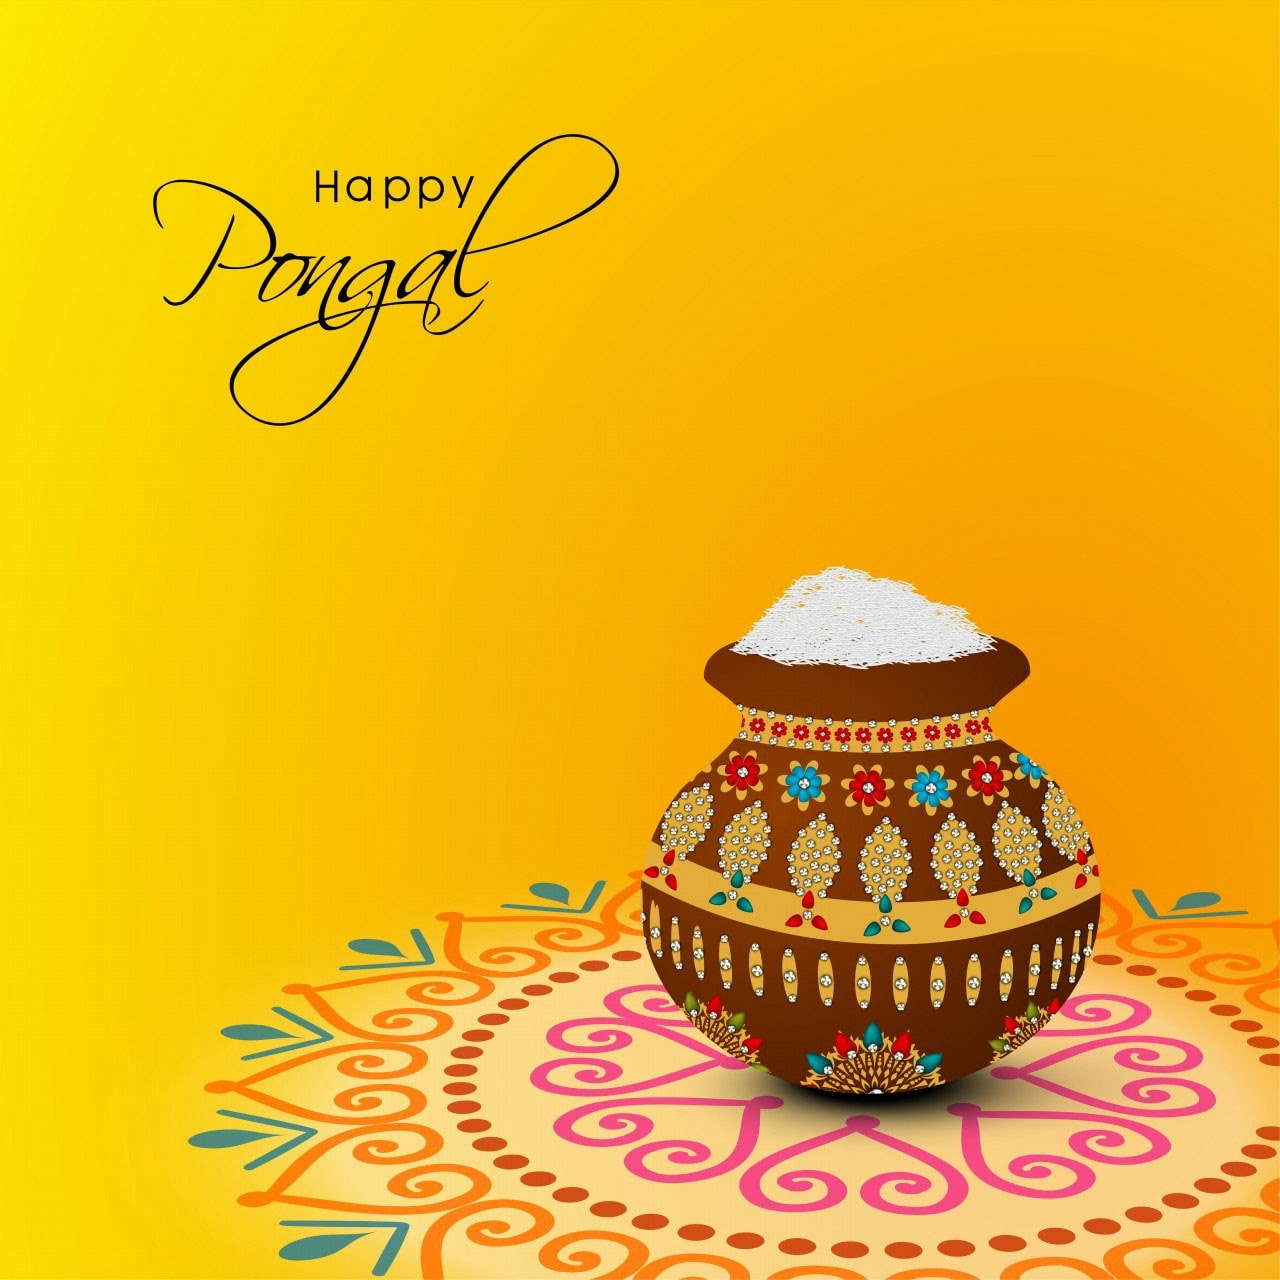 6622-Happy-Pongal-Greetings-Sms-Messages-In-Hindi-And-Tamil-Facebook